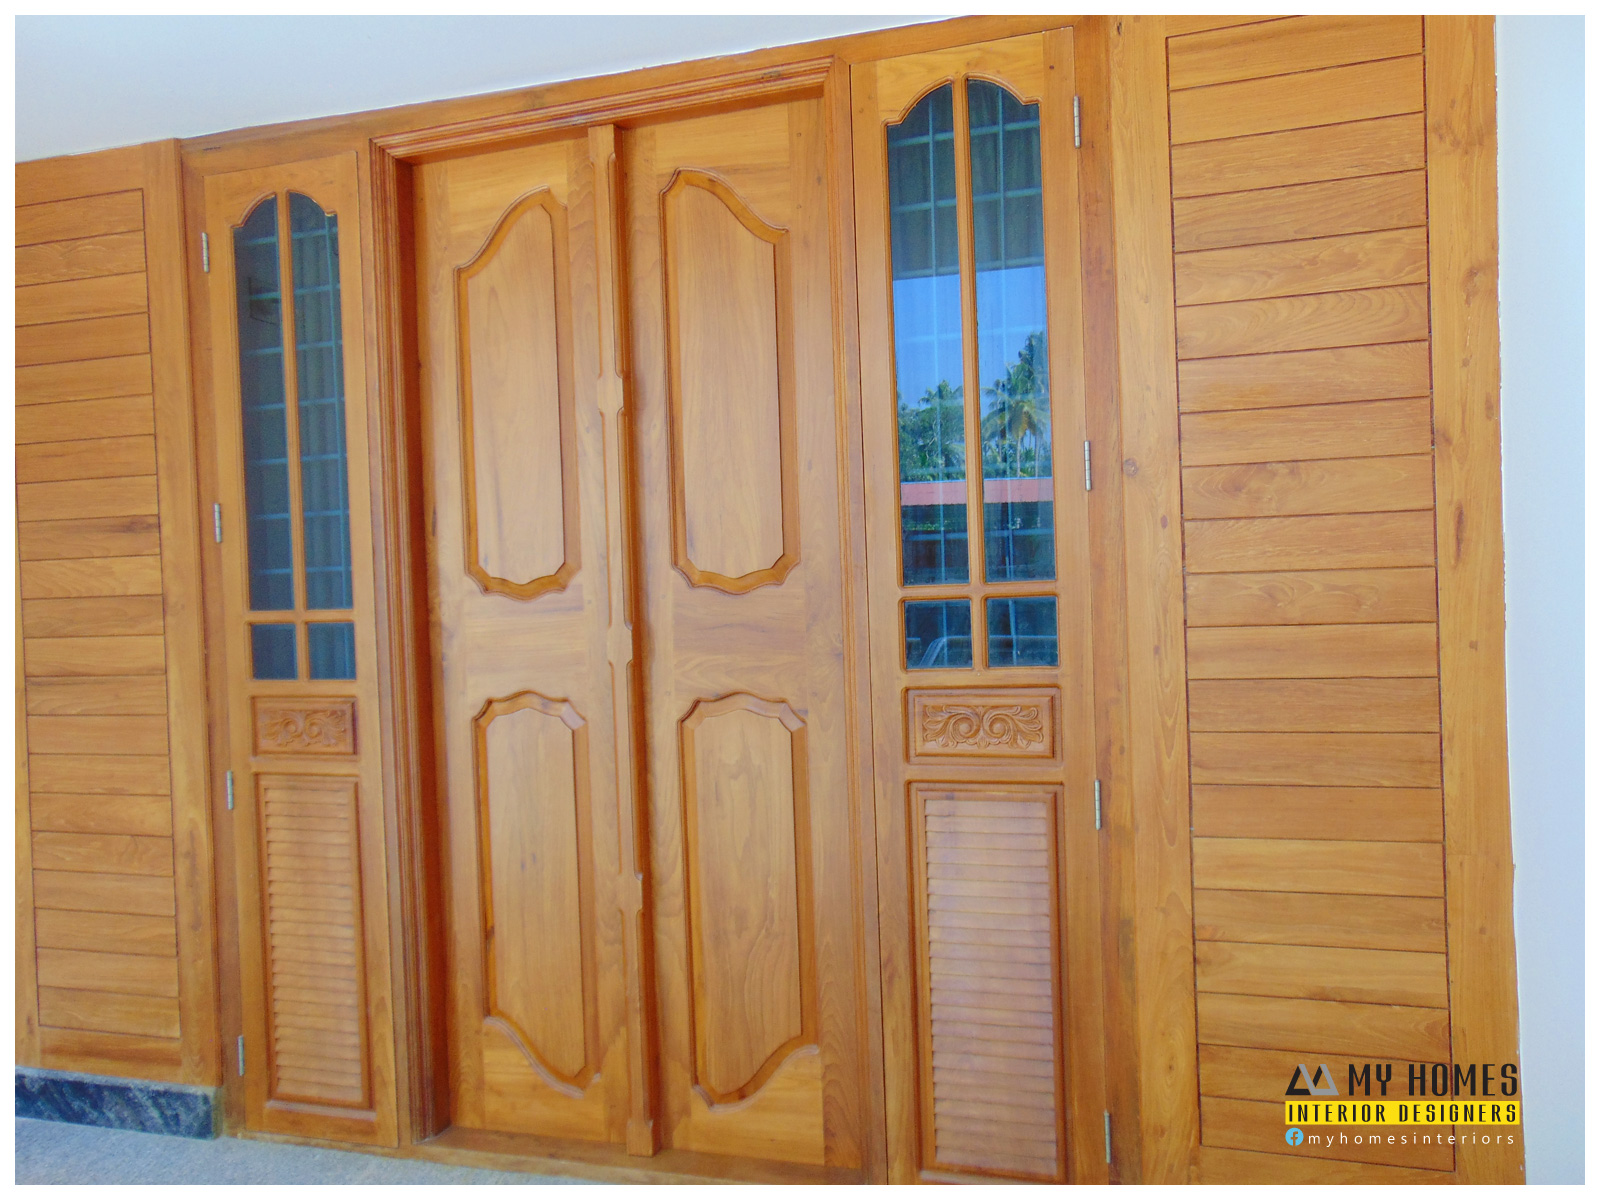 Wooden door style in kerala door designs photosm images for Latest wooden door designs 2016